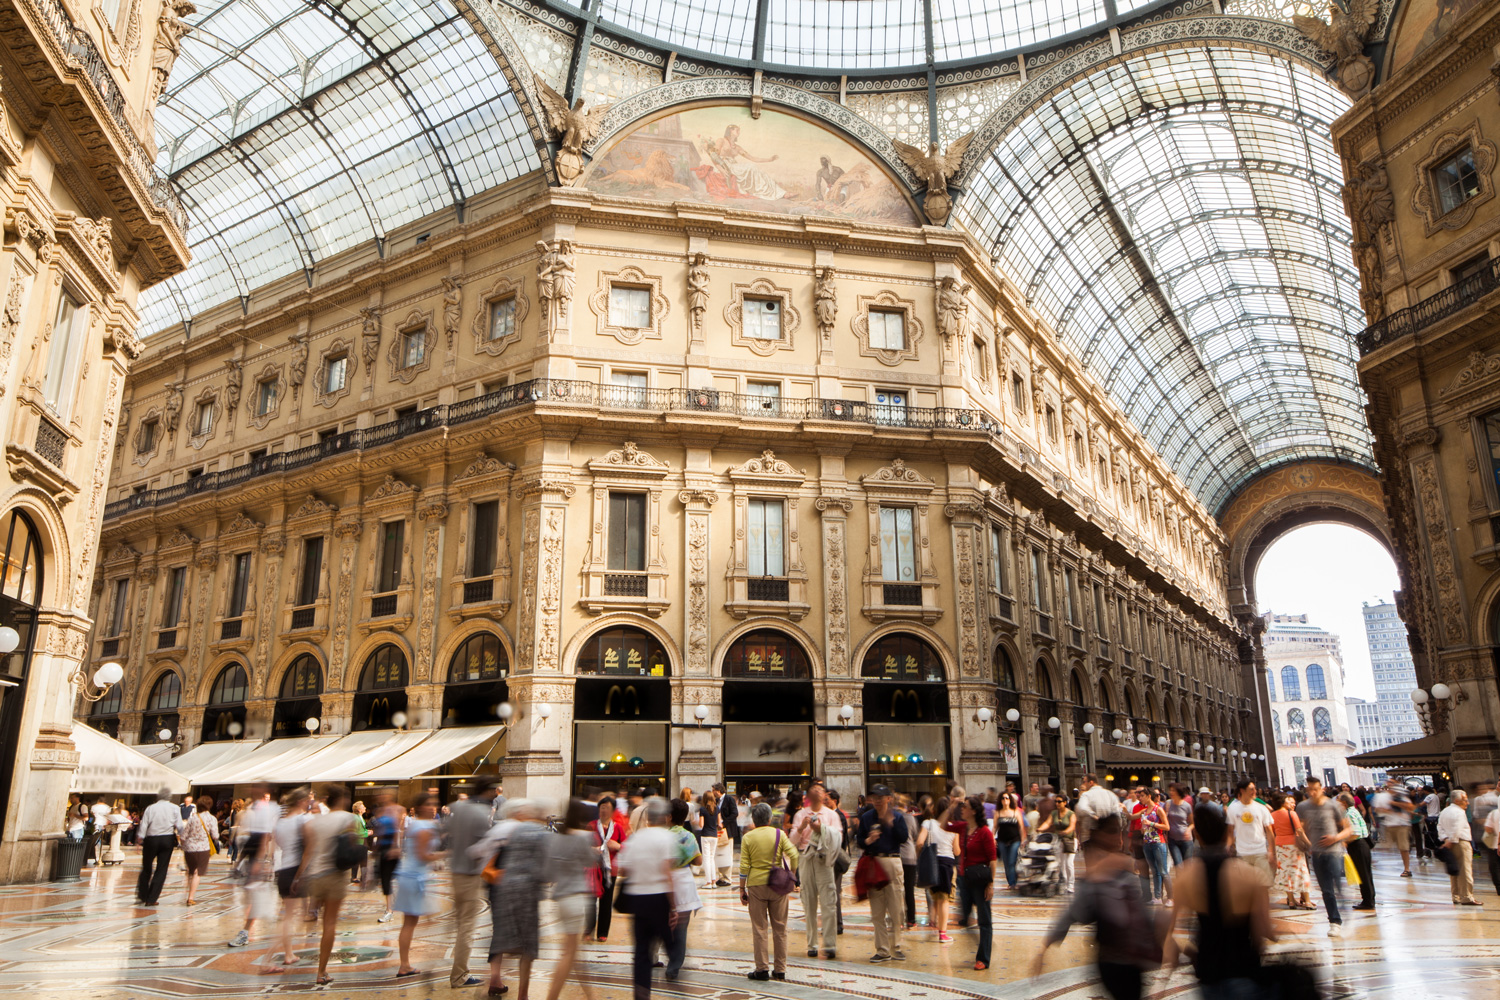 Galleria Vittorio Emanuele 2 shopping mall in Milan, Italy